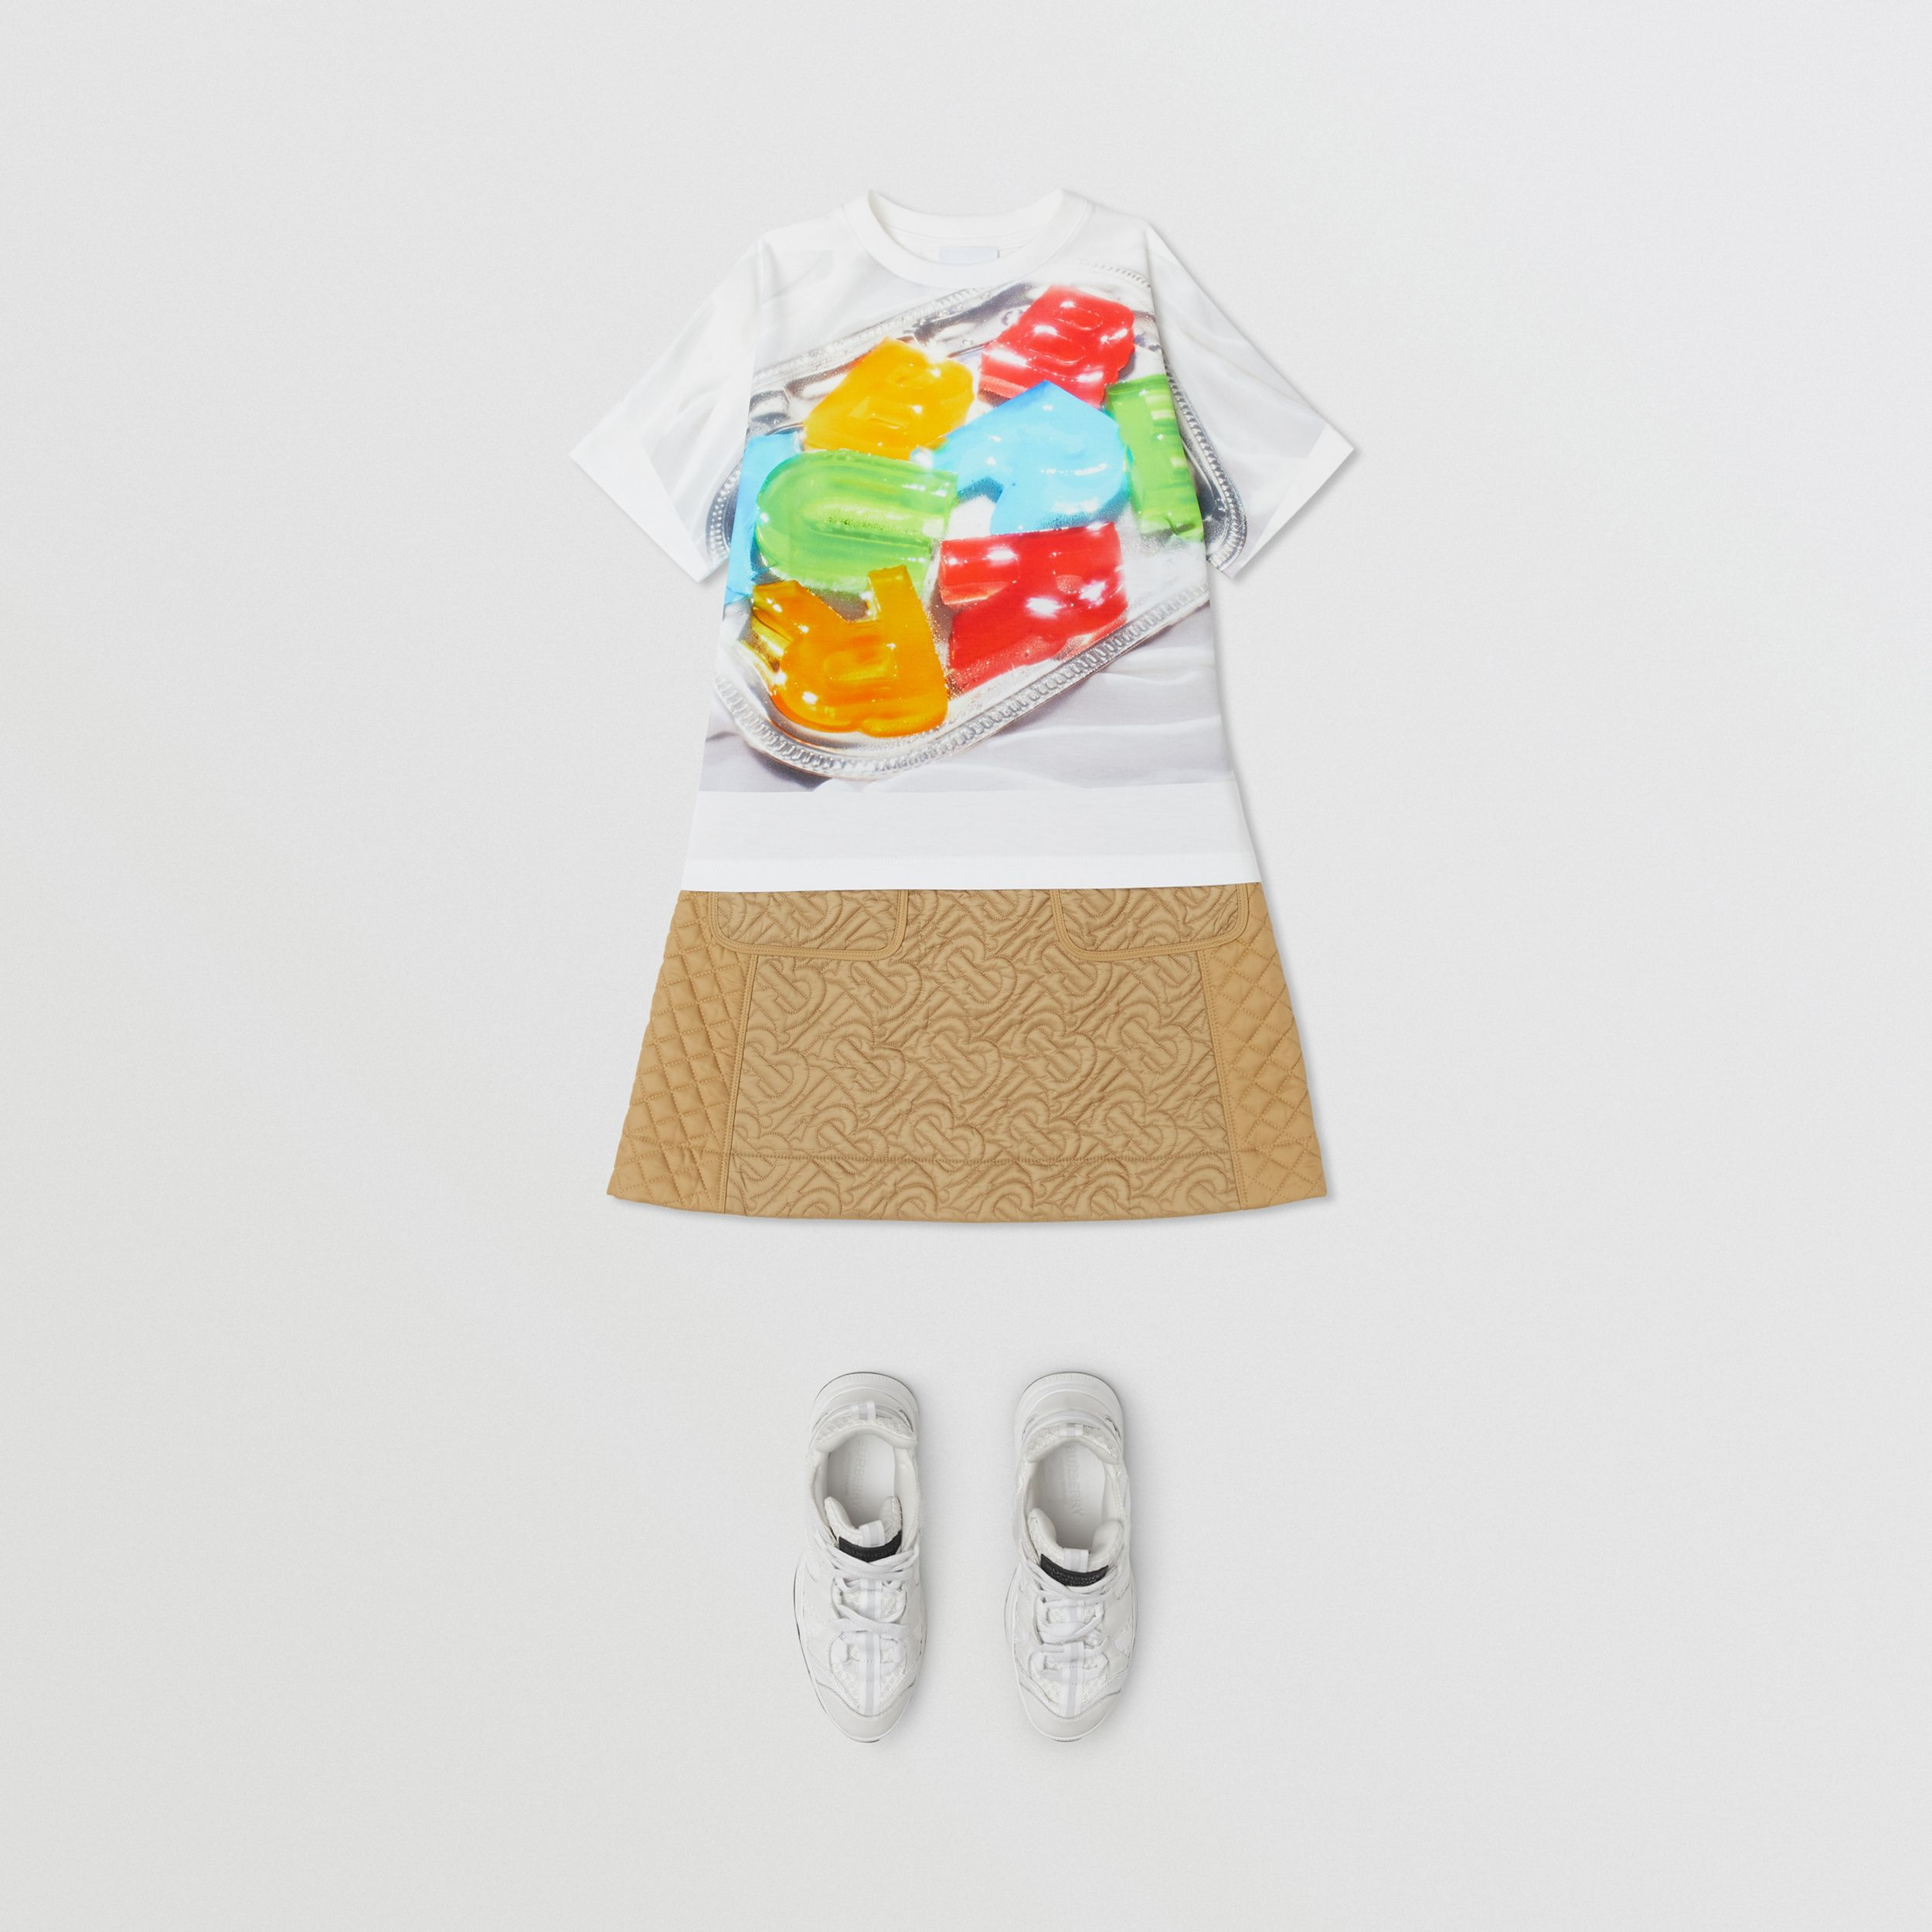 Confectionery Print Cotton T-shirt in Multicolour | Burberry United Kingdom - 3